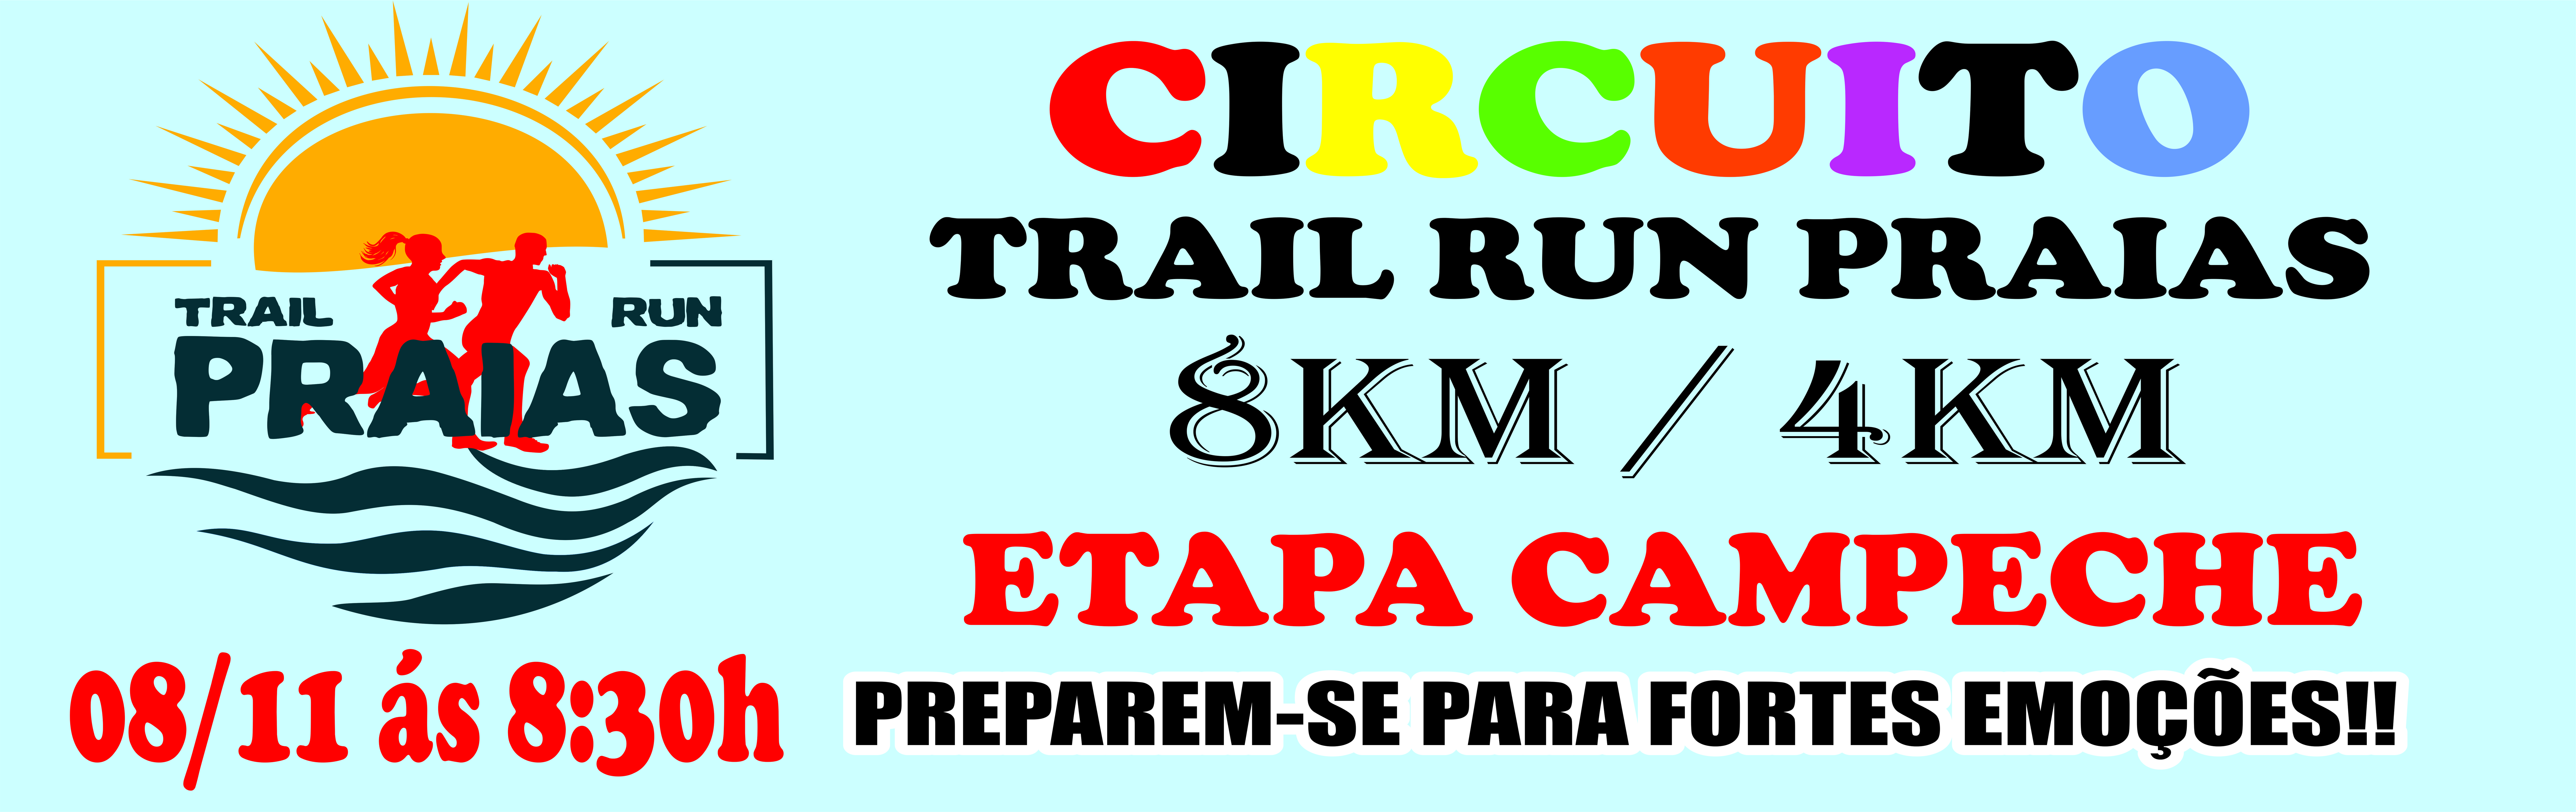 Trail Run Praias - Etapa Campeche 2020